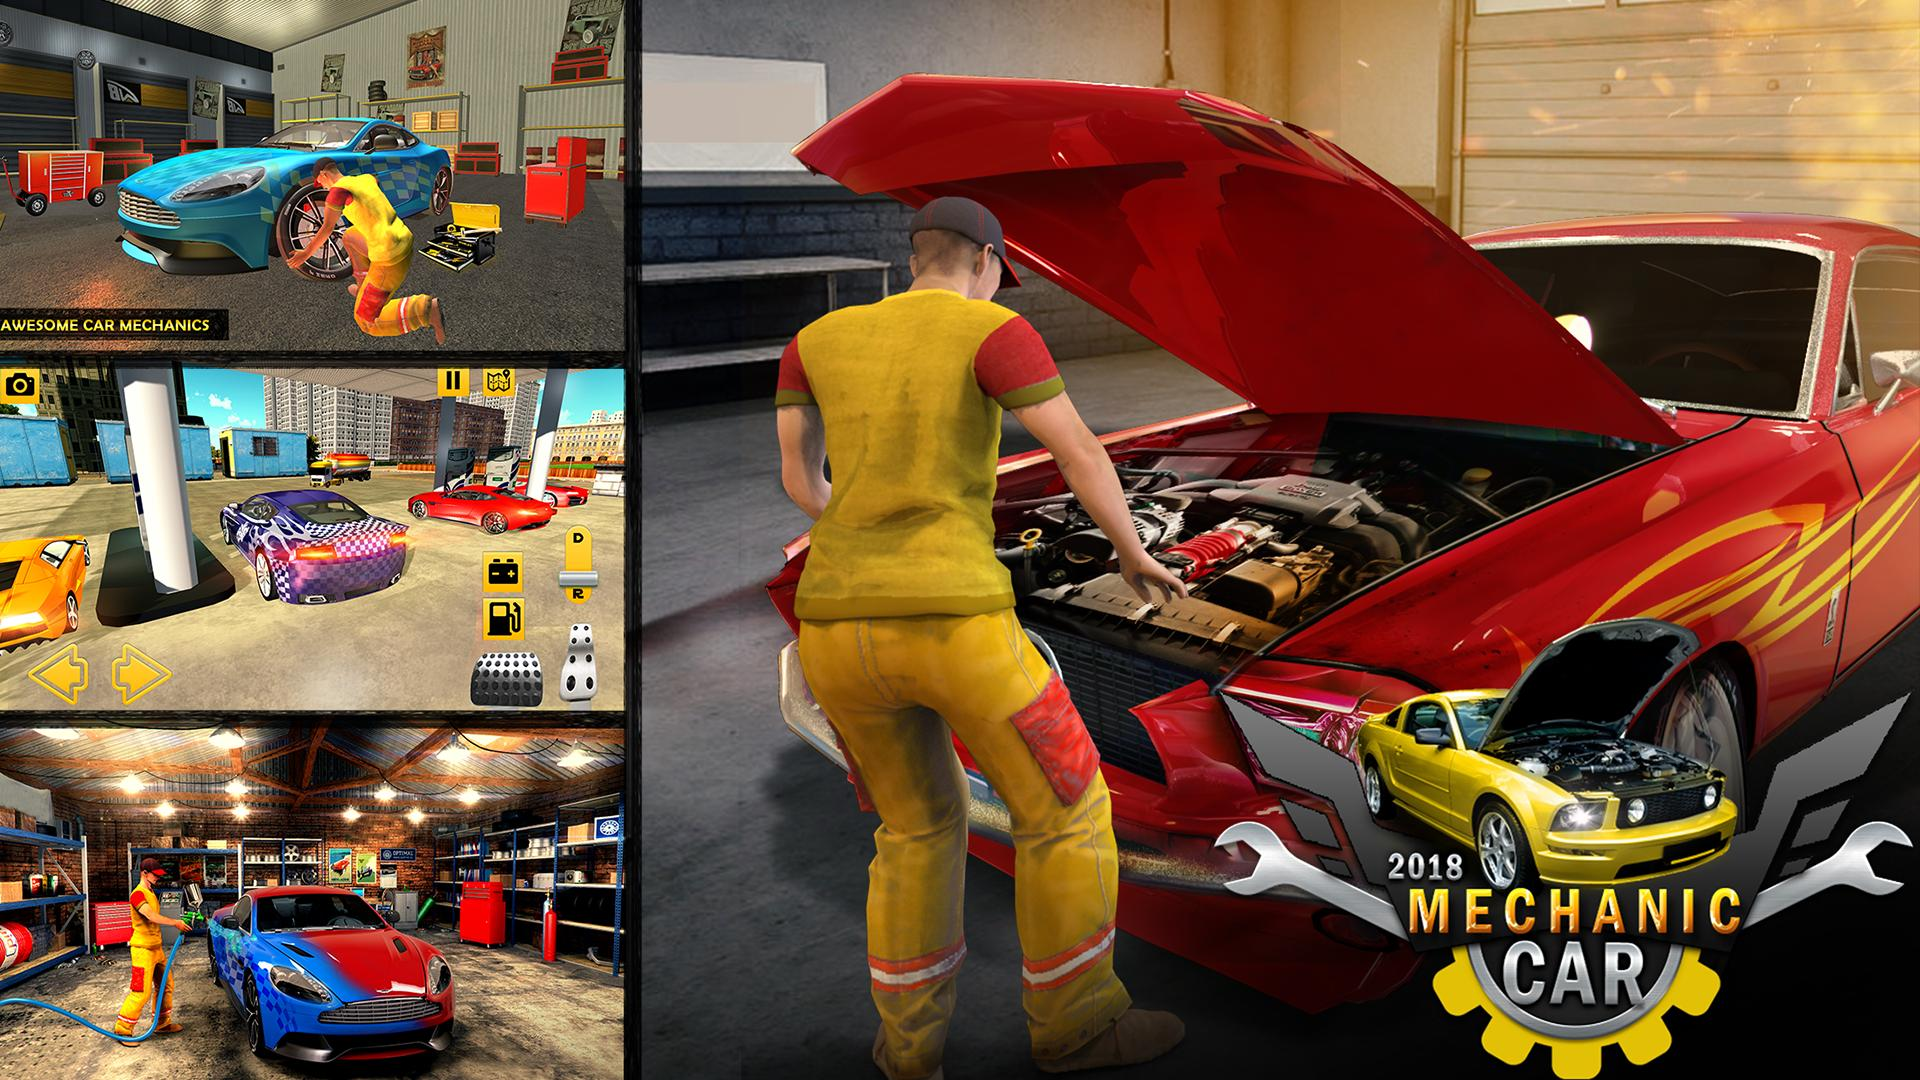 Car Mechanic Simulator 2018 – Car Fixing Game for Android - APK Download